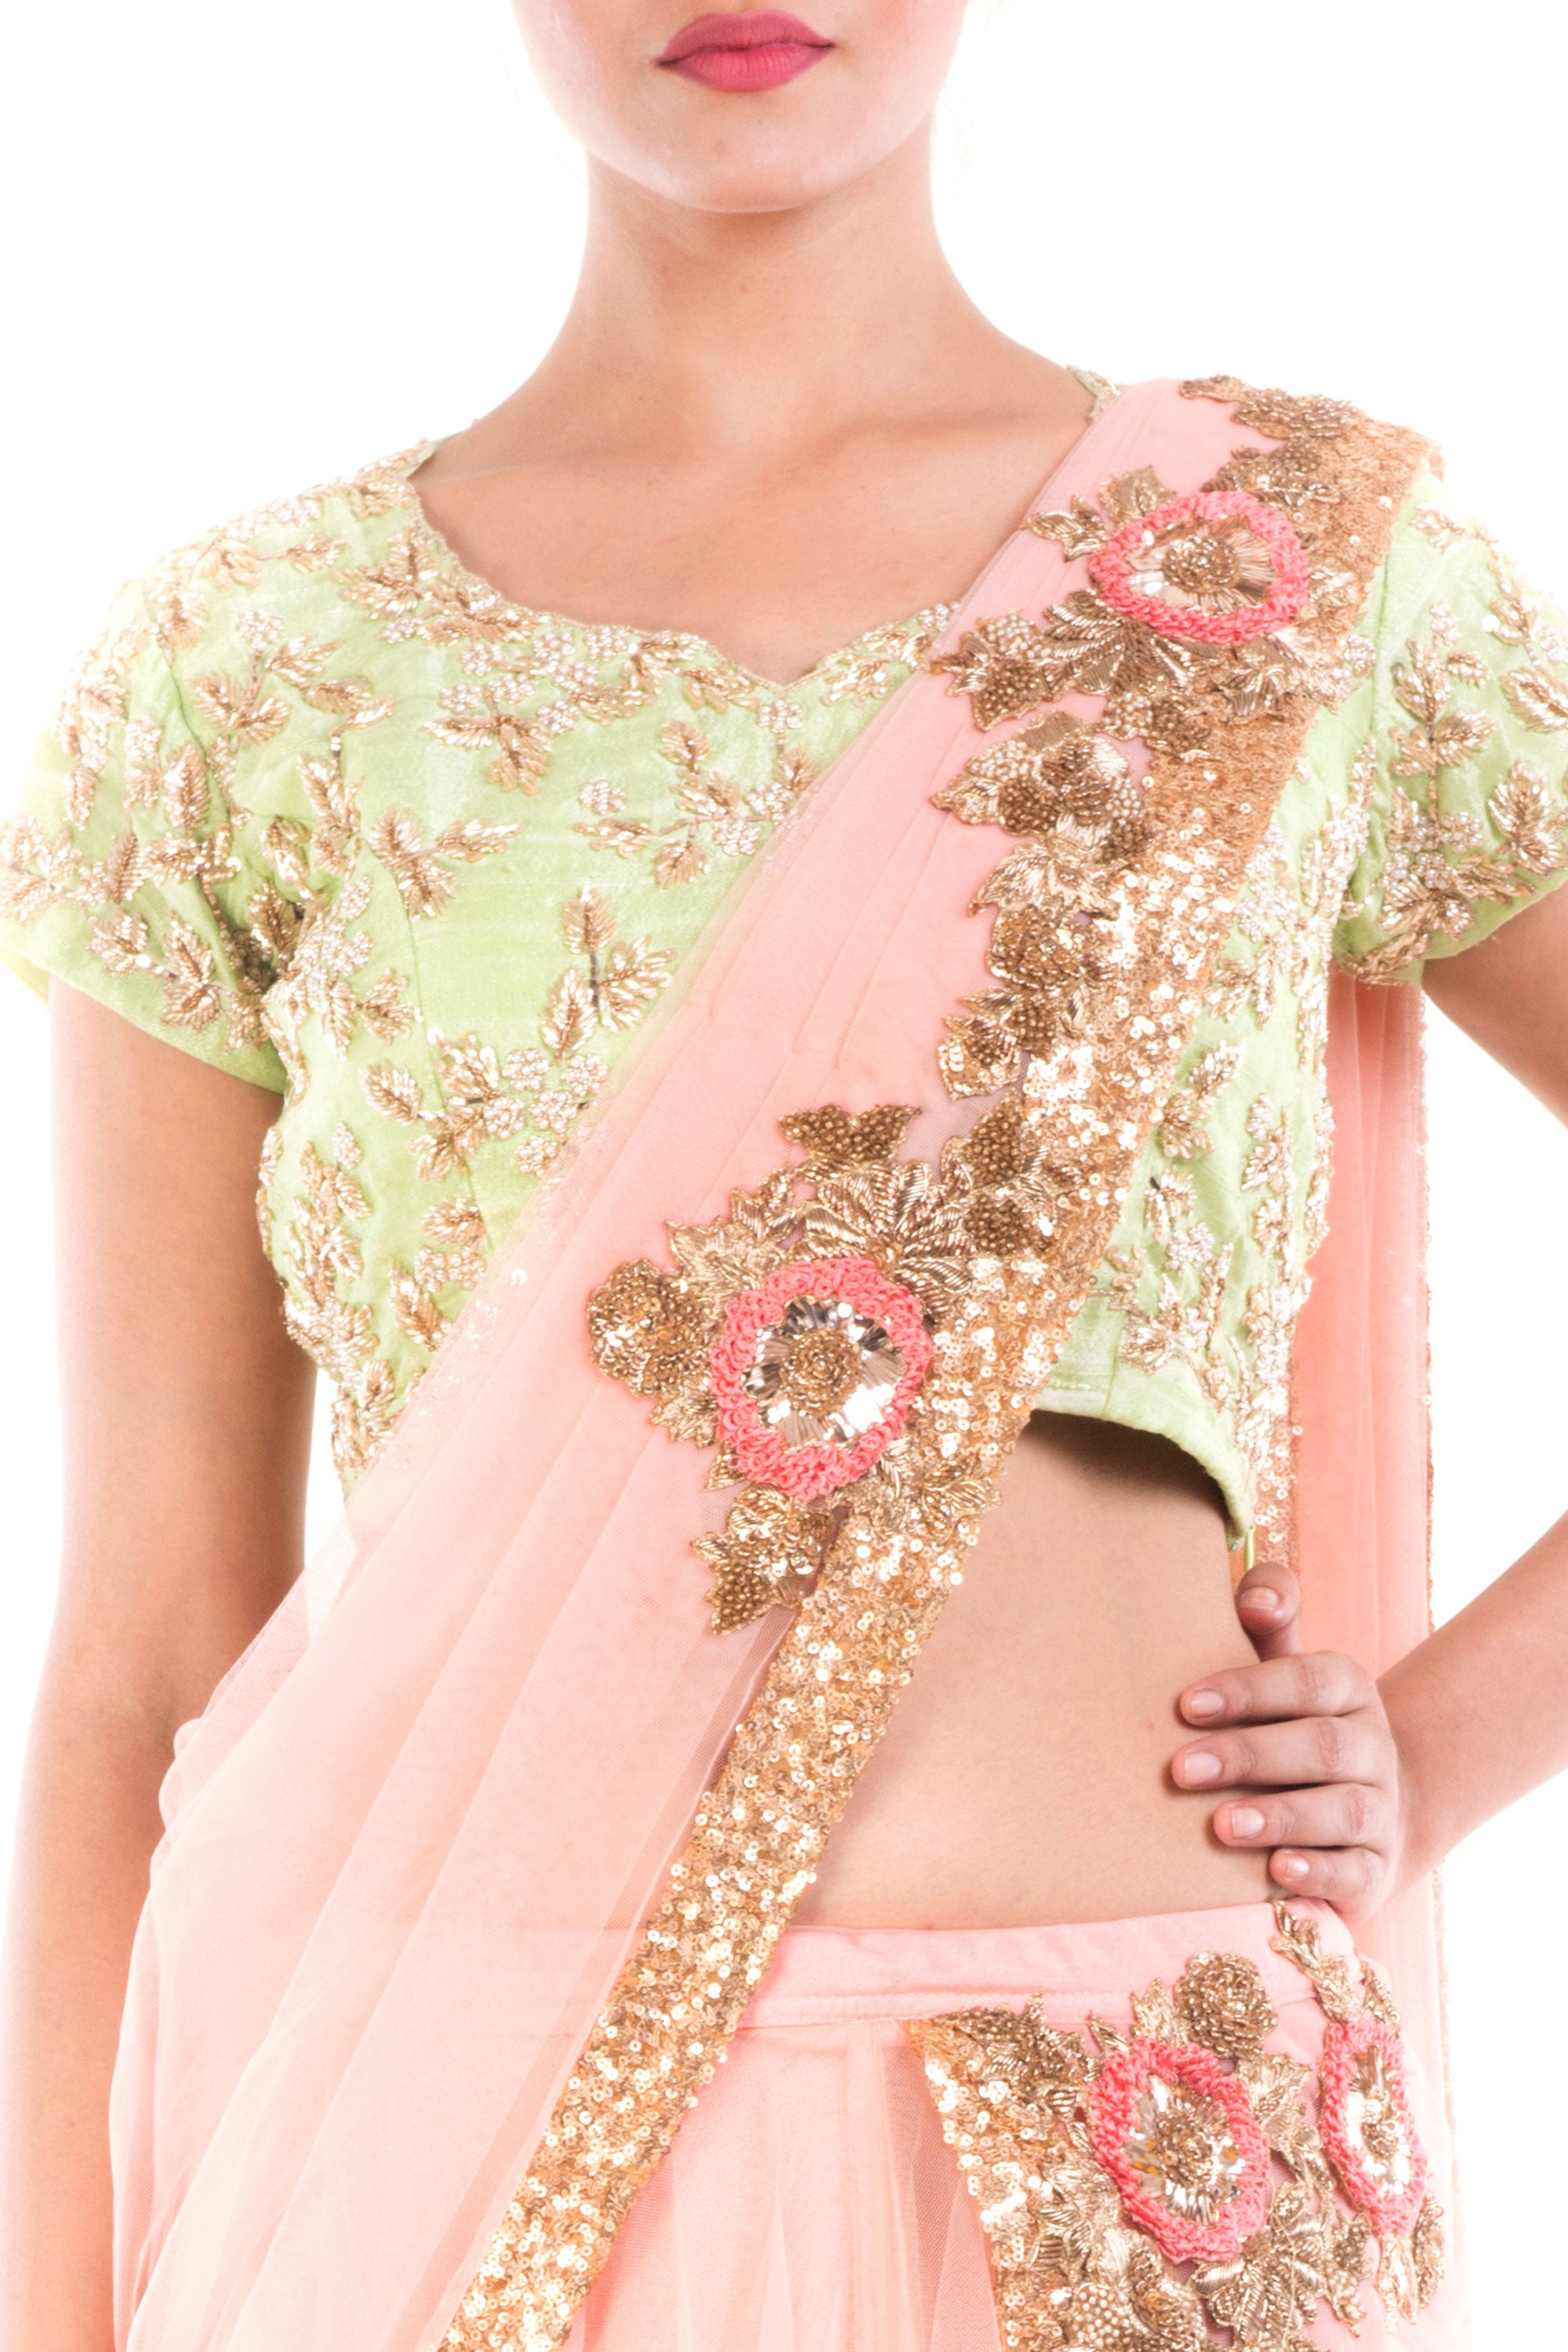 Custard Cream Draped Lehenga Closeup